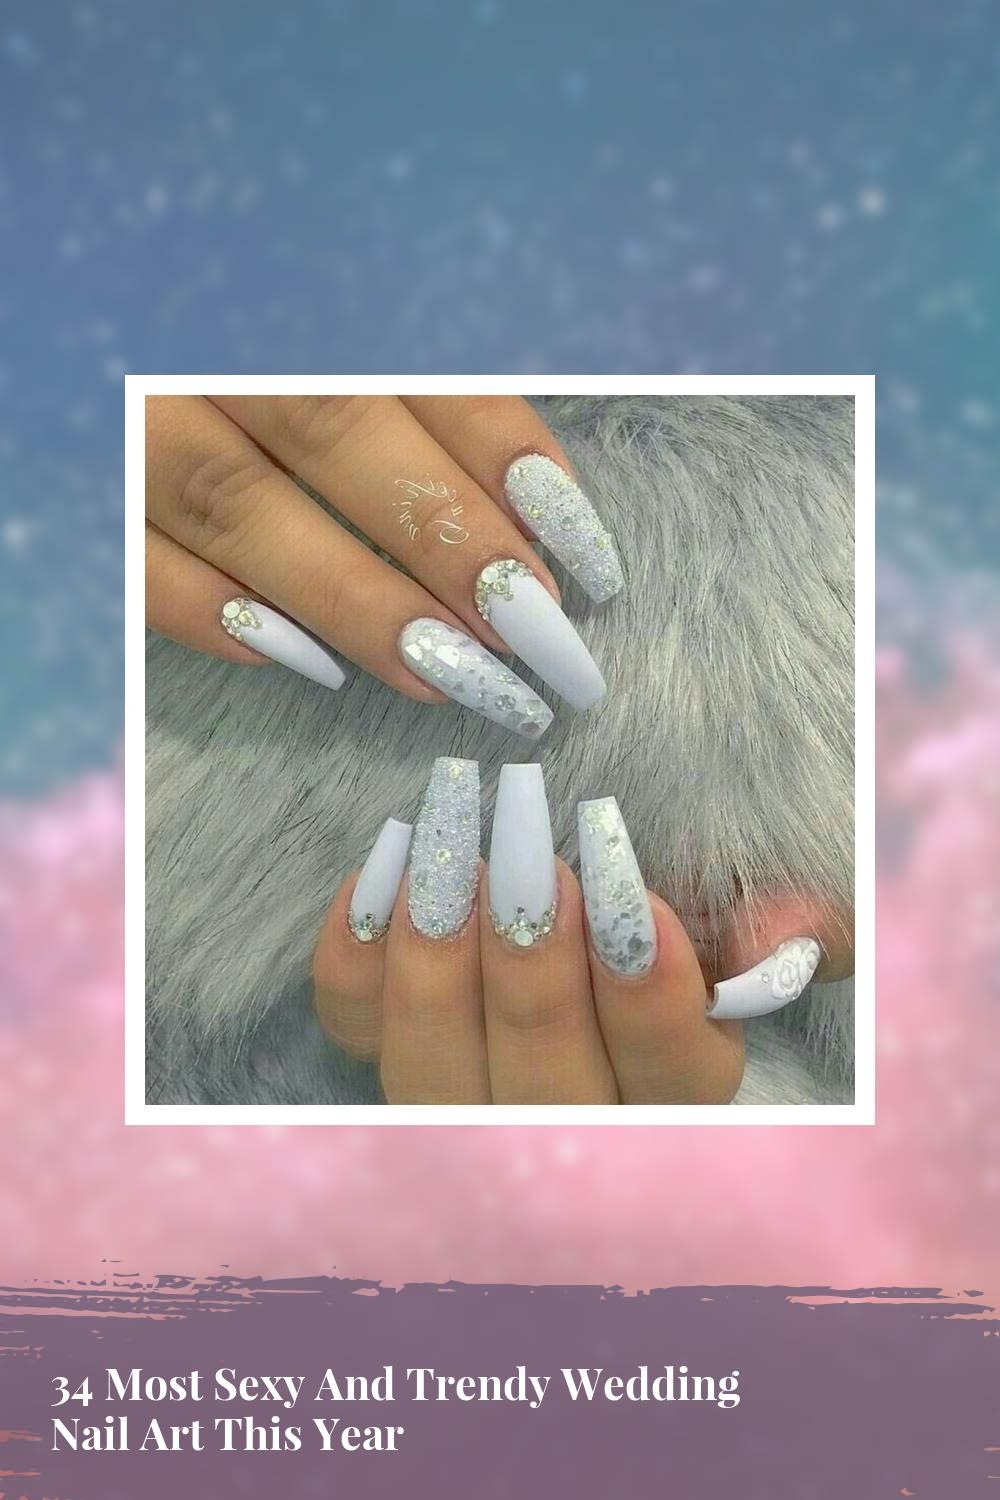 34 Most Sexy And Trendy Wedding Nail Art This Year 1